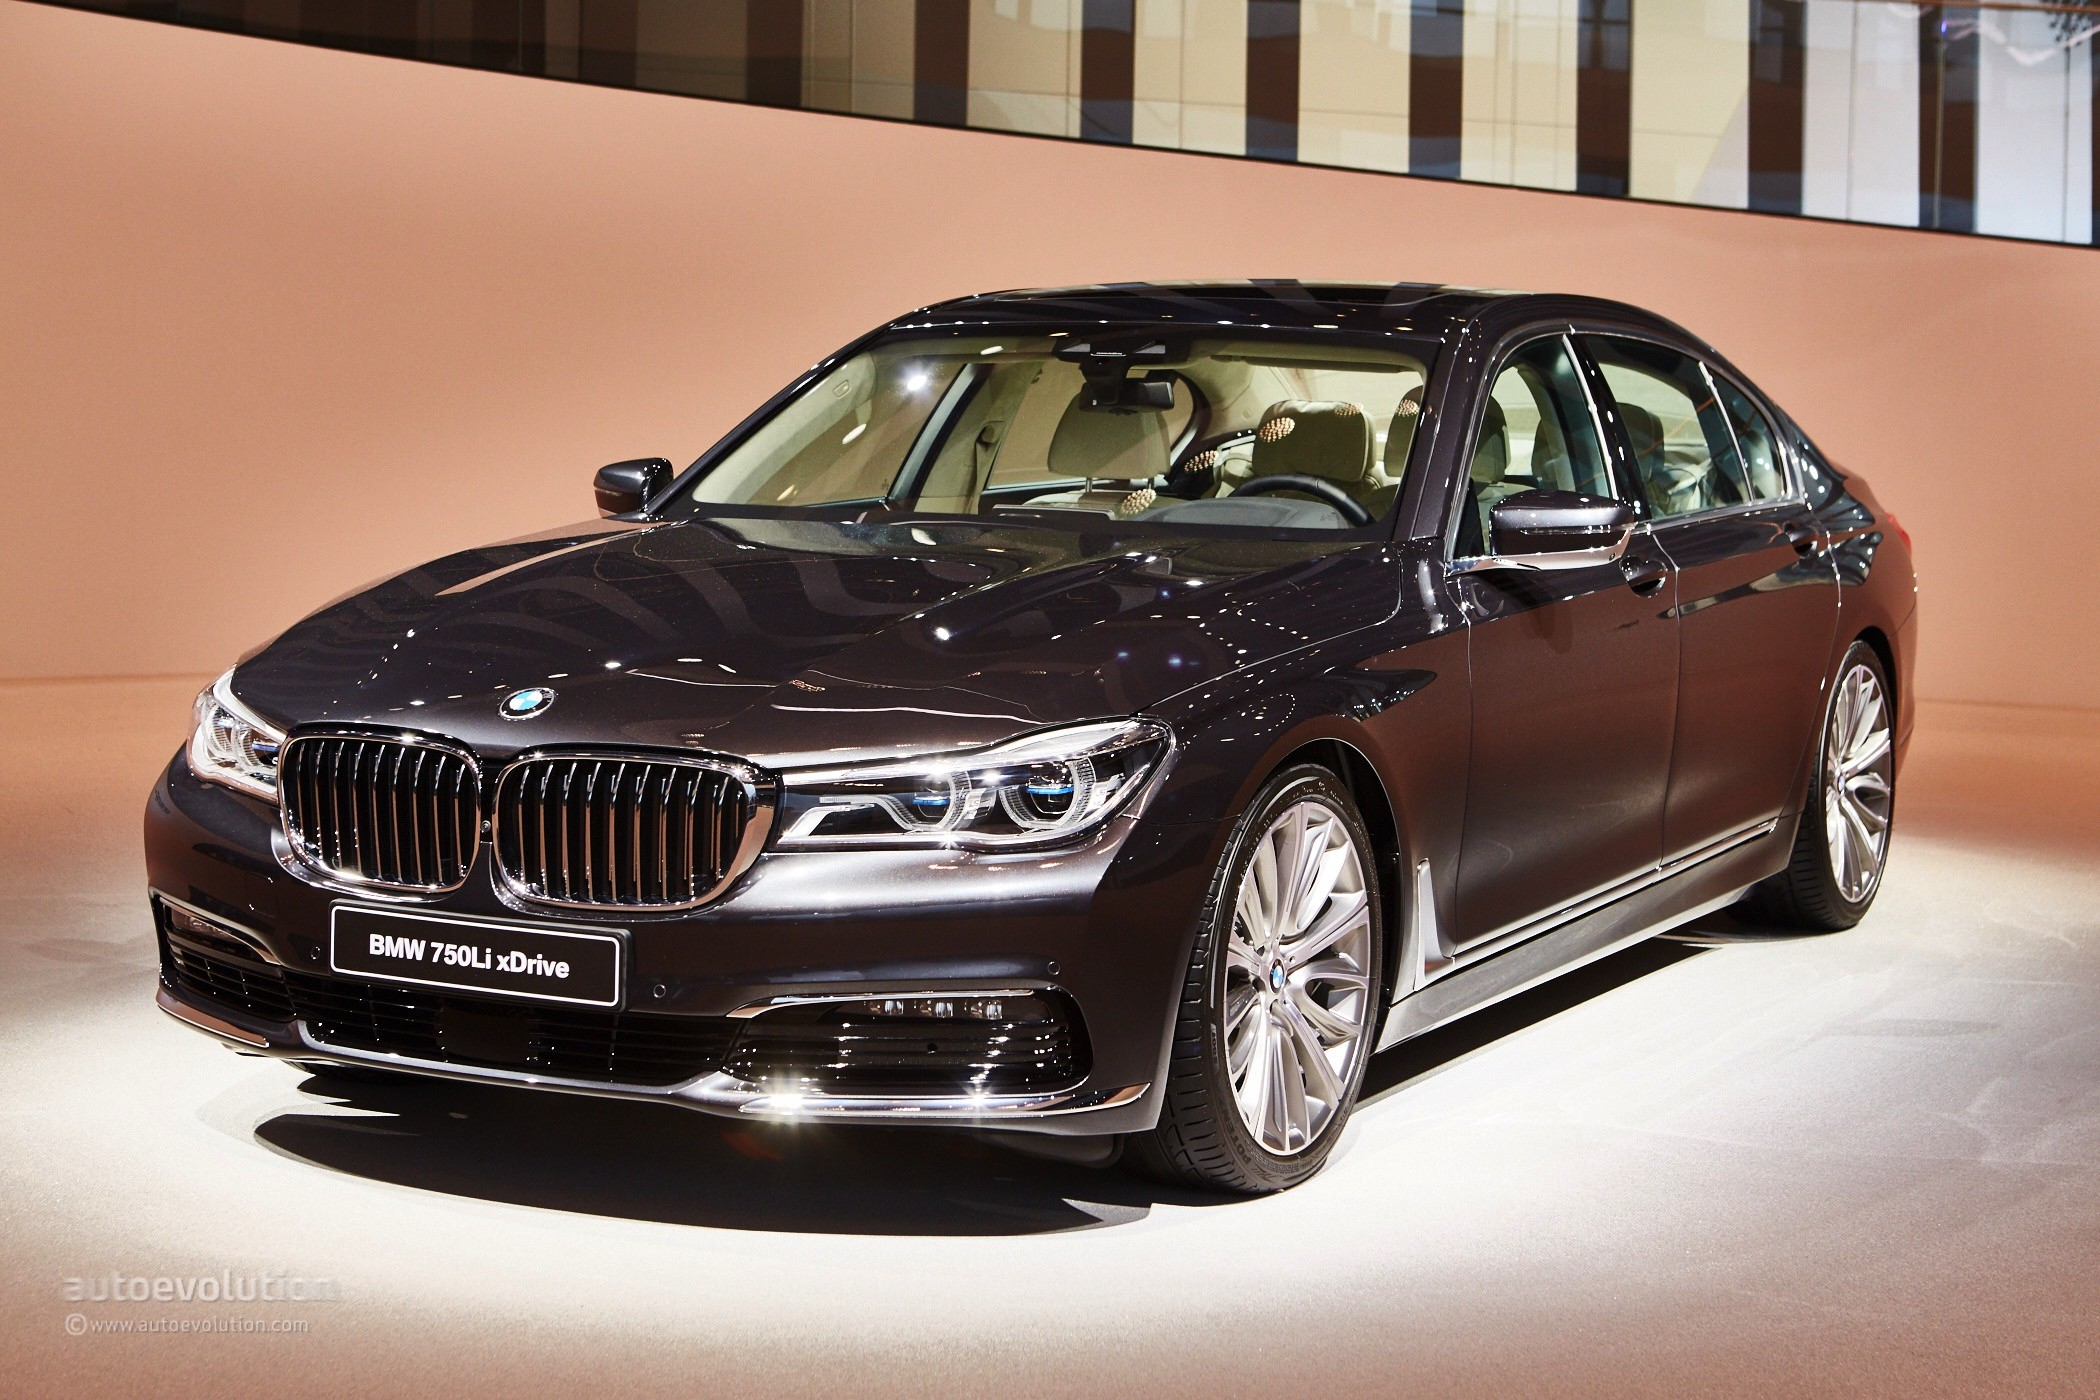 2016 bmw g11 7 series spotted wearing panoramic sunroof autoevolution. Black Bedroom Furniture Sets. Home Design Ideas